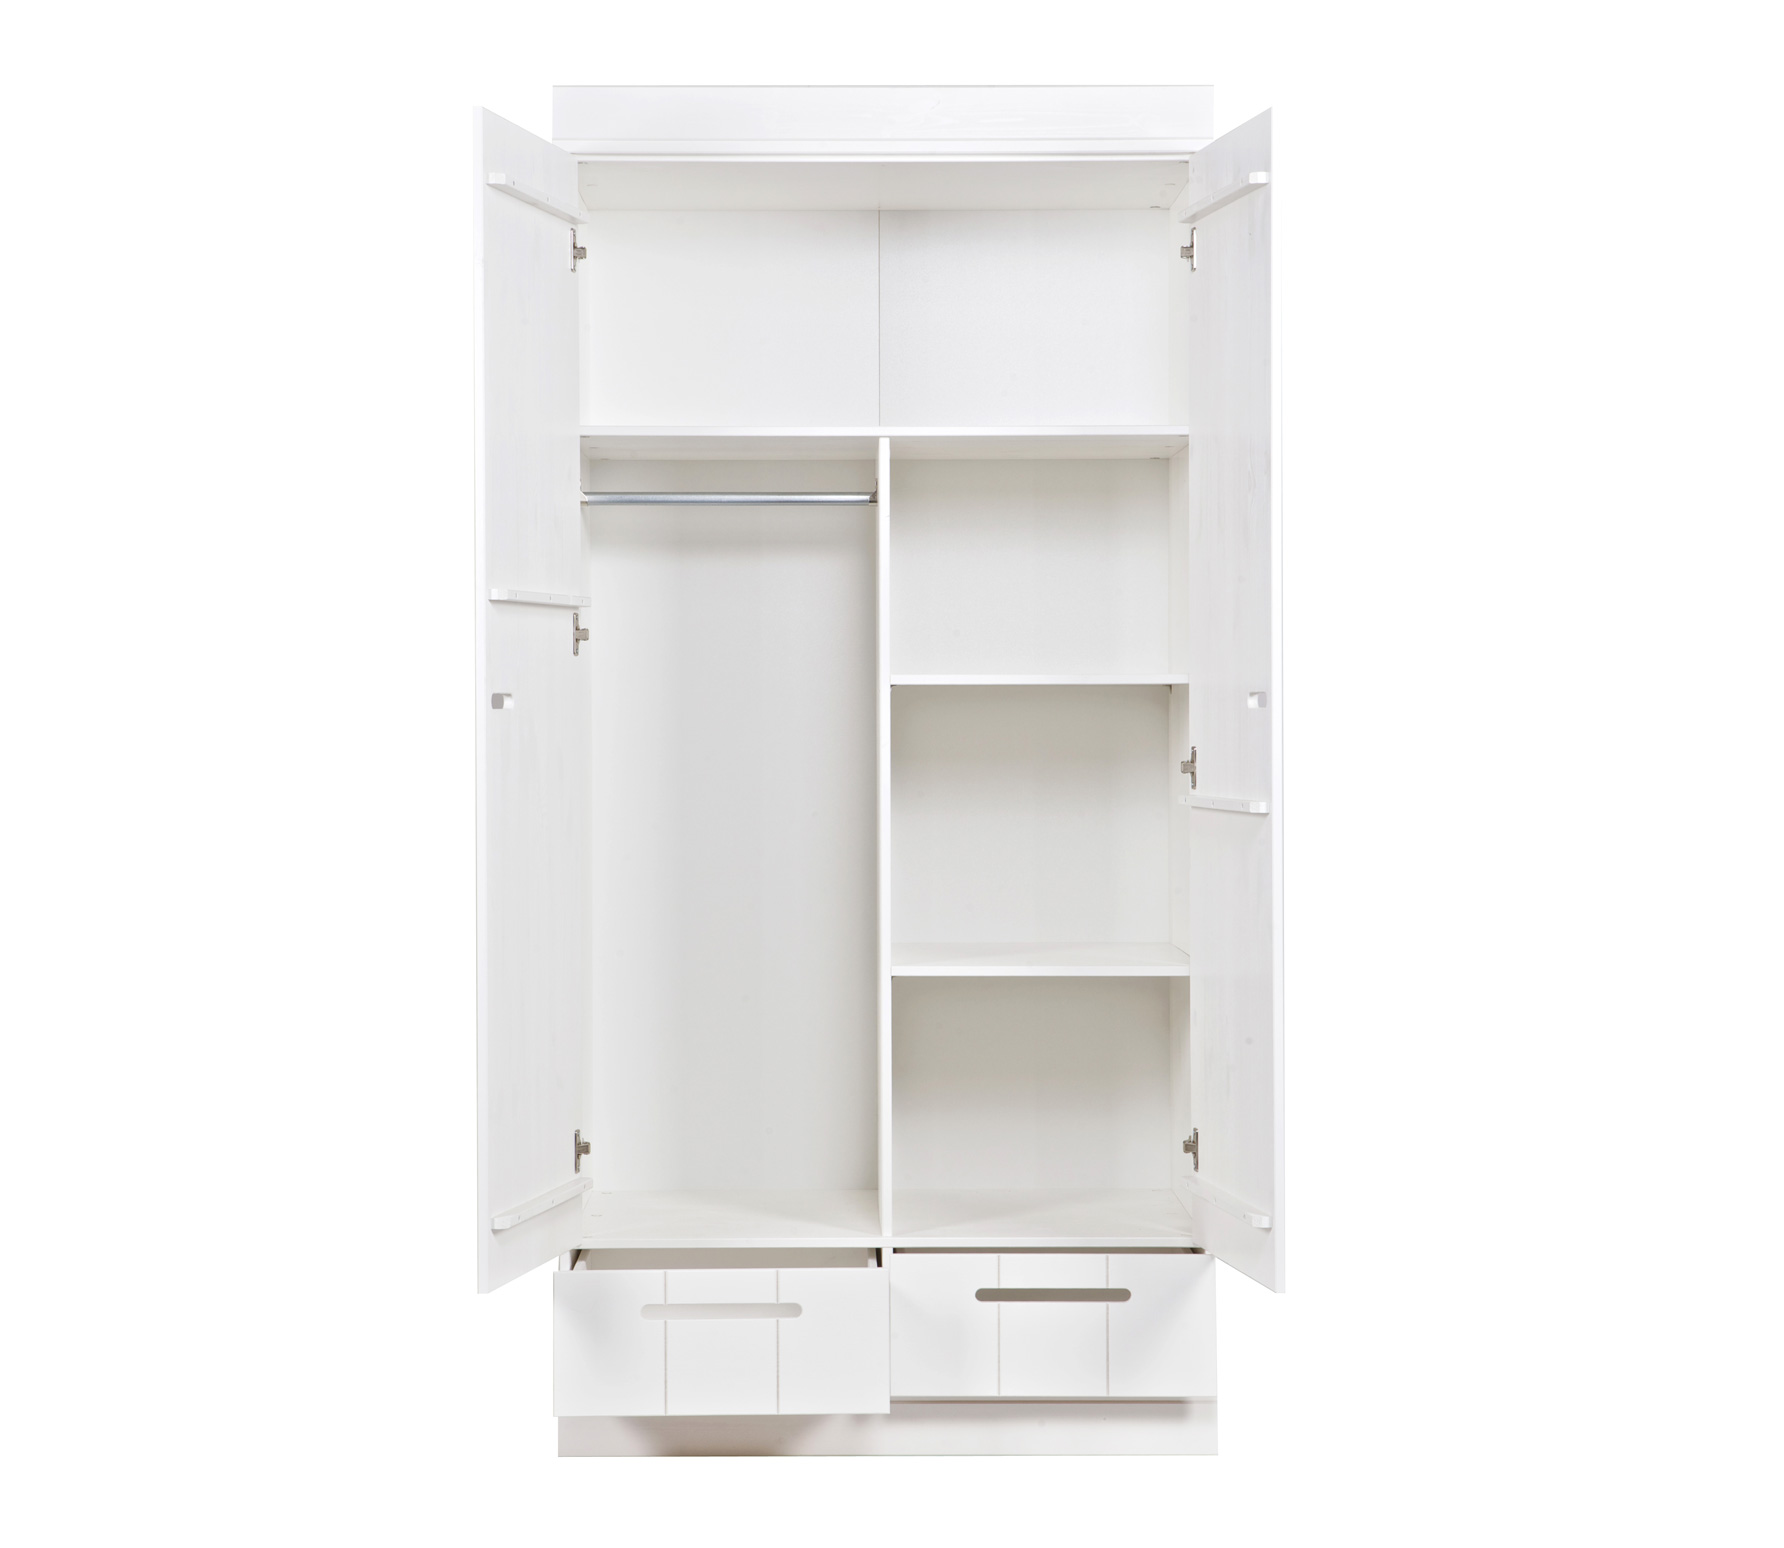 Connect 2 door locker wardrobe with 2 drawers additional for 4 door wardrobe interior designs